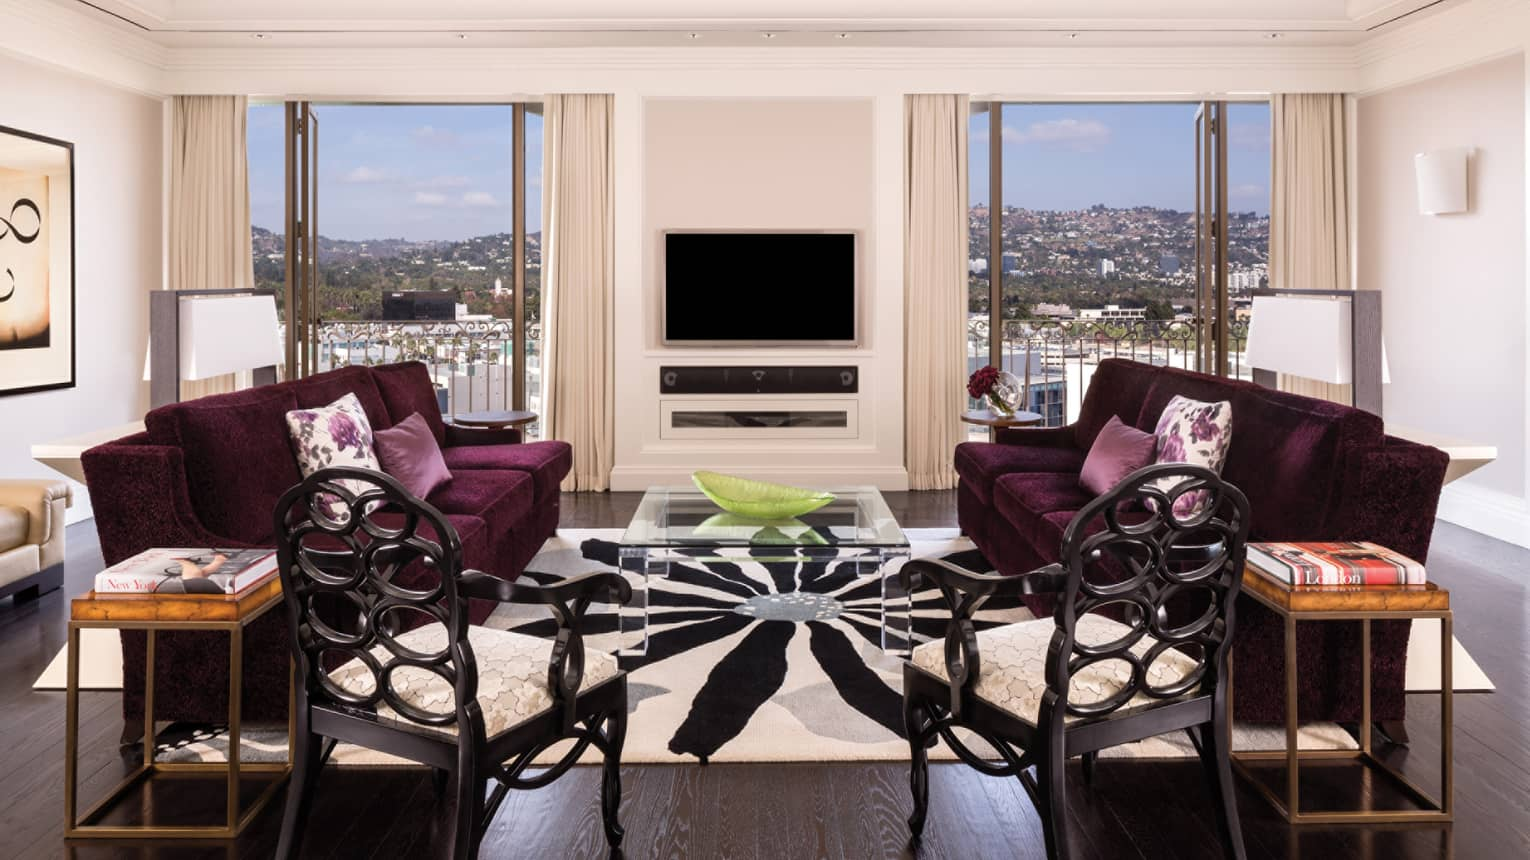 Presidential Suite living room, chairs, purple loveseats by glass table, TV, two windows